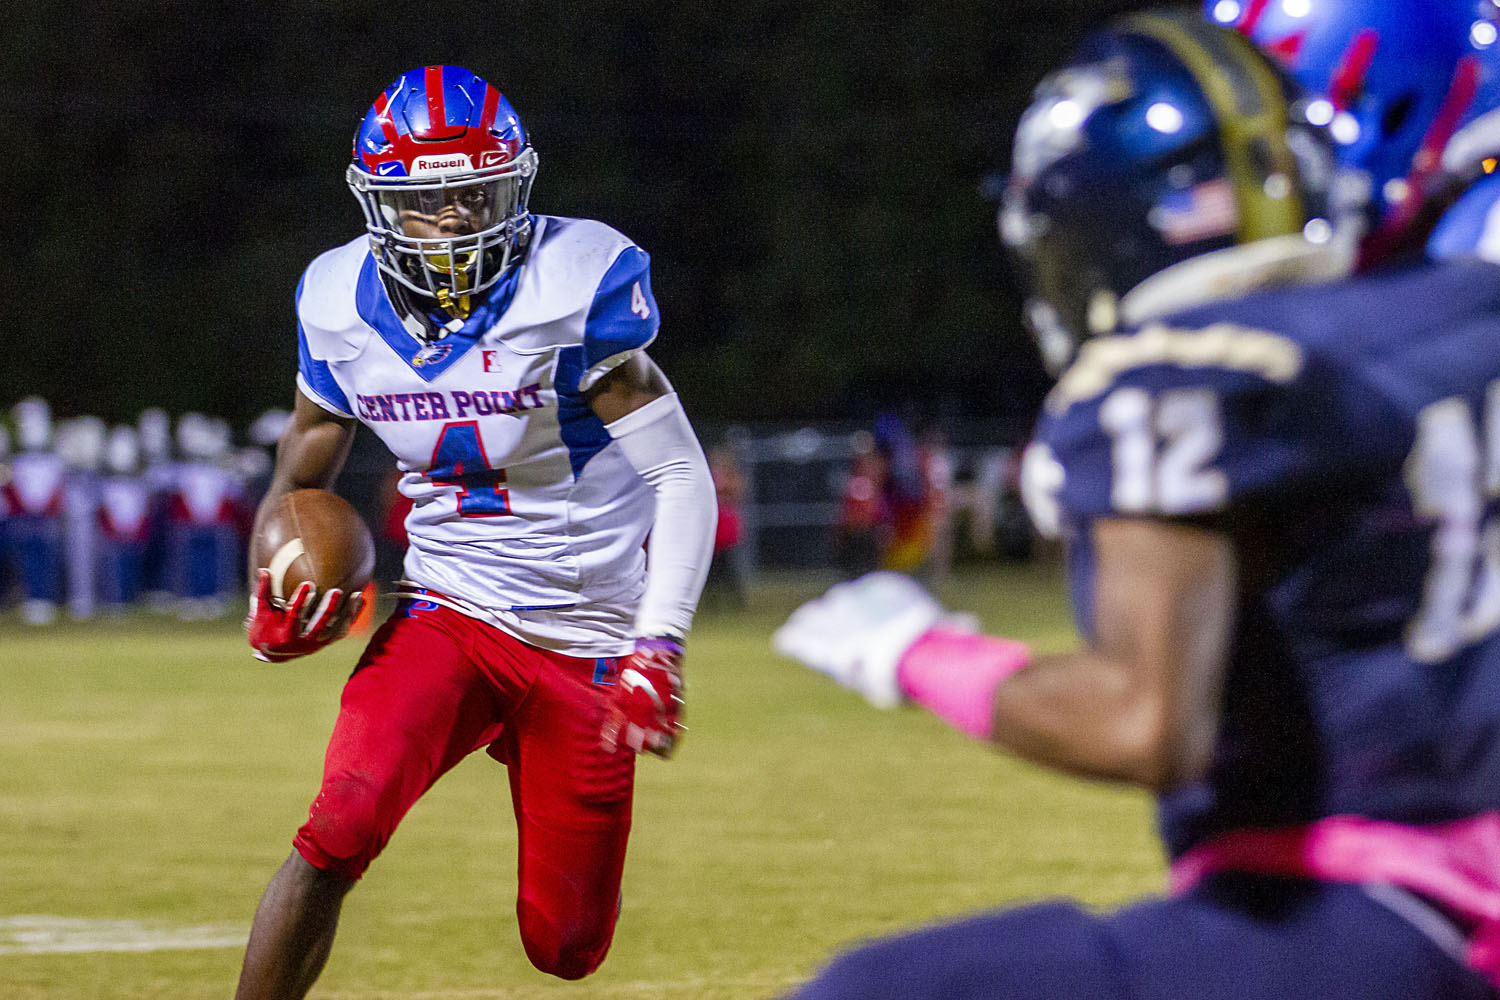 For Center Point, battle for home playoff game goes through Class 5A reigning champion Central Clay County